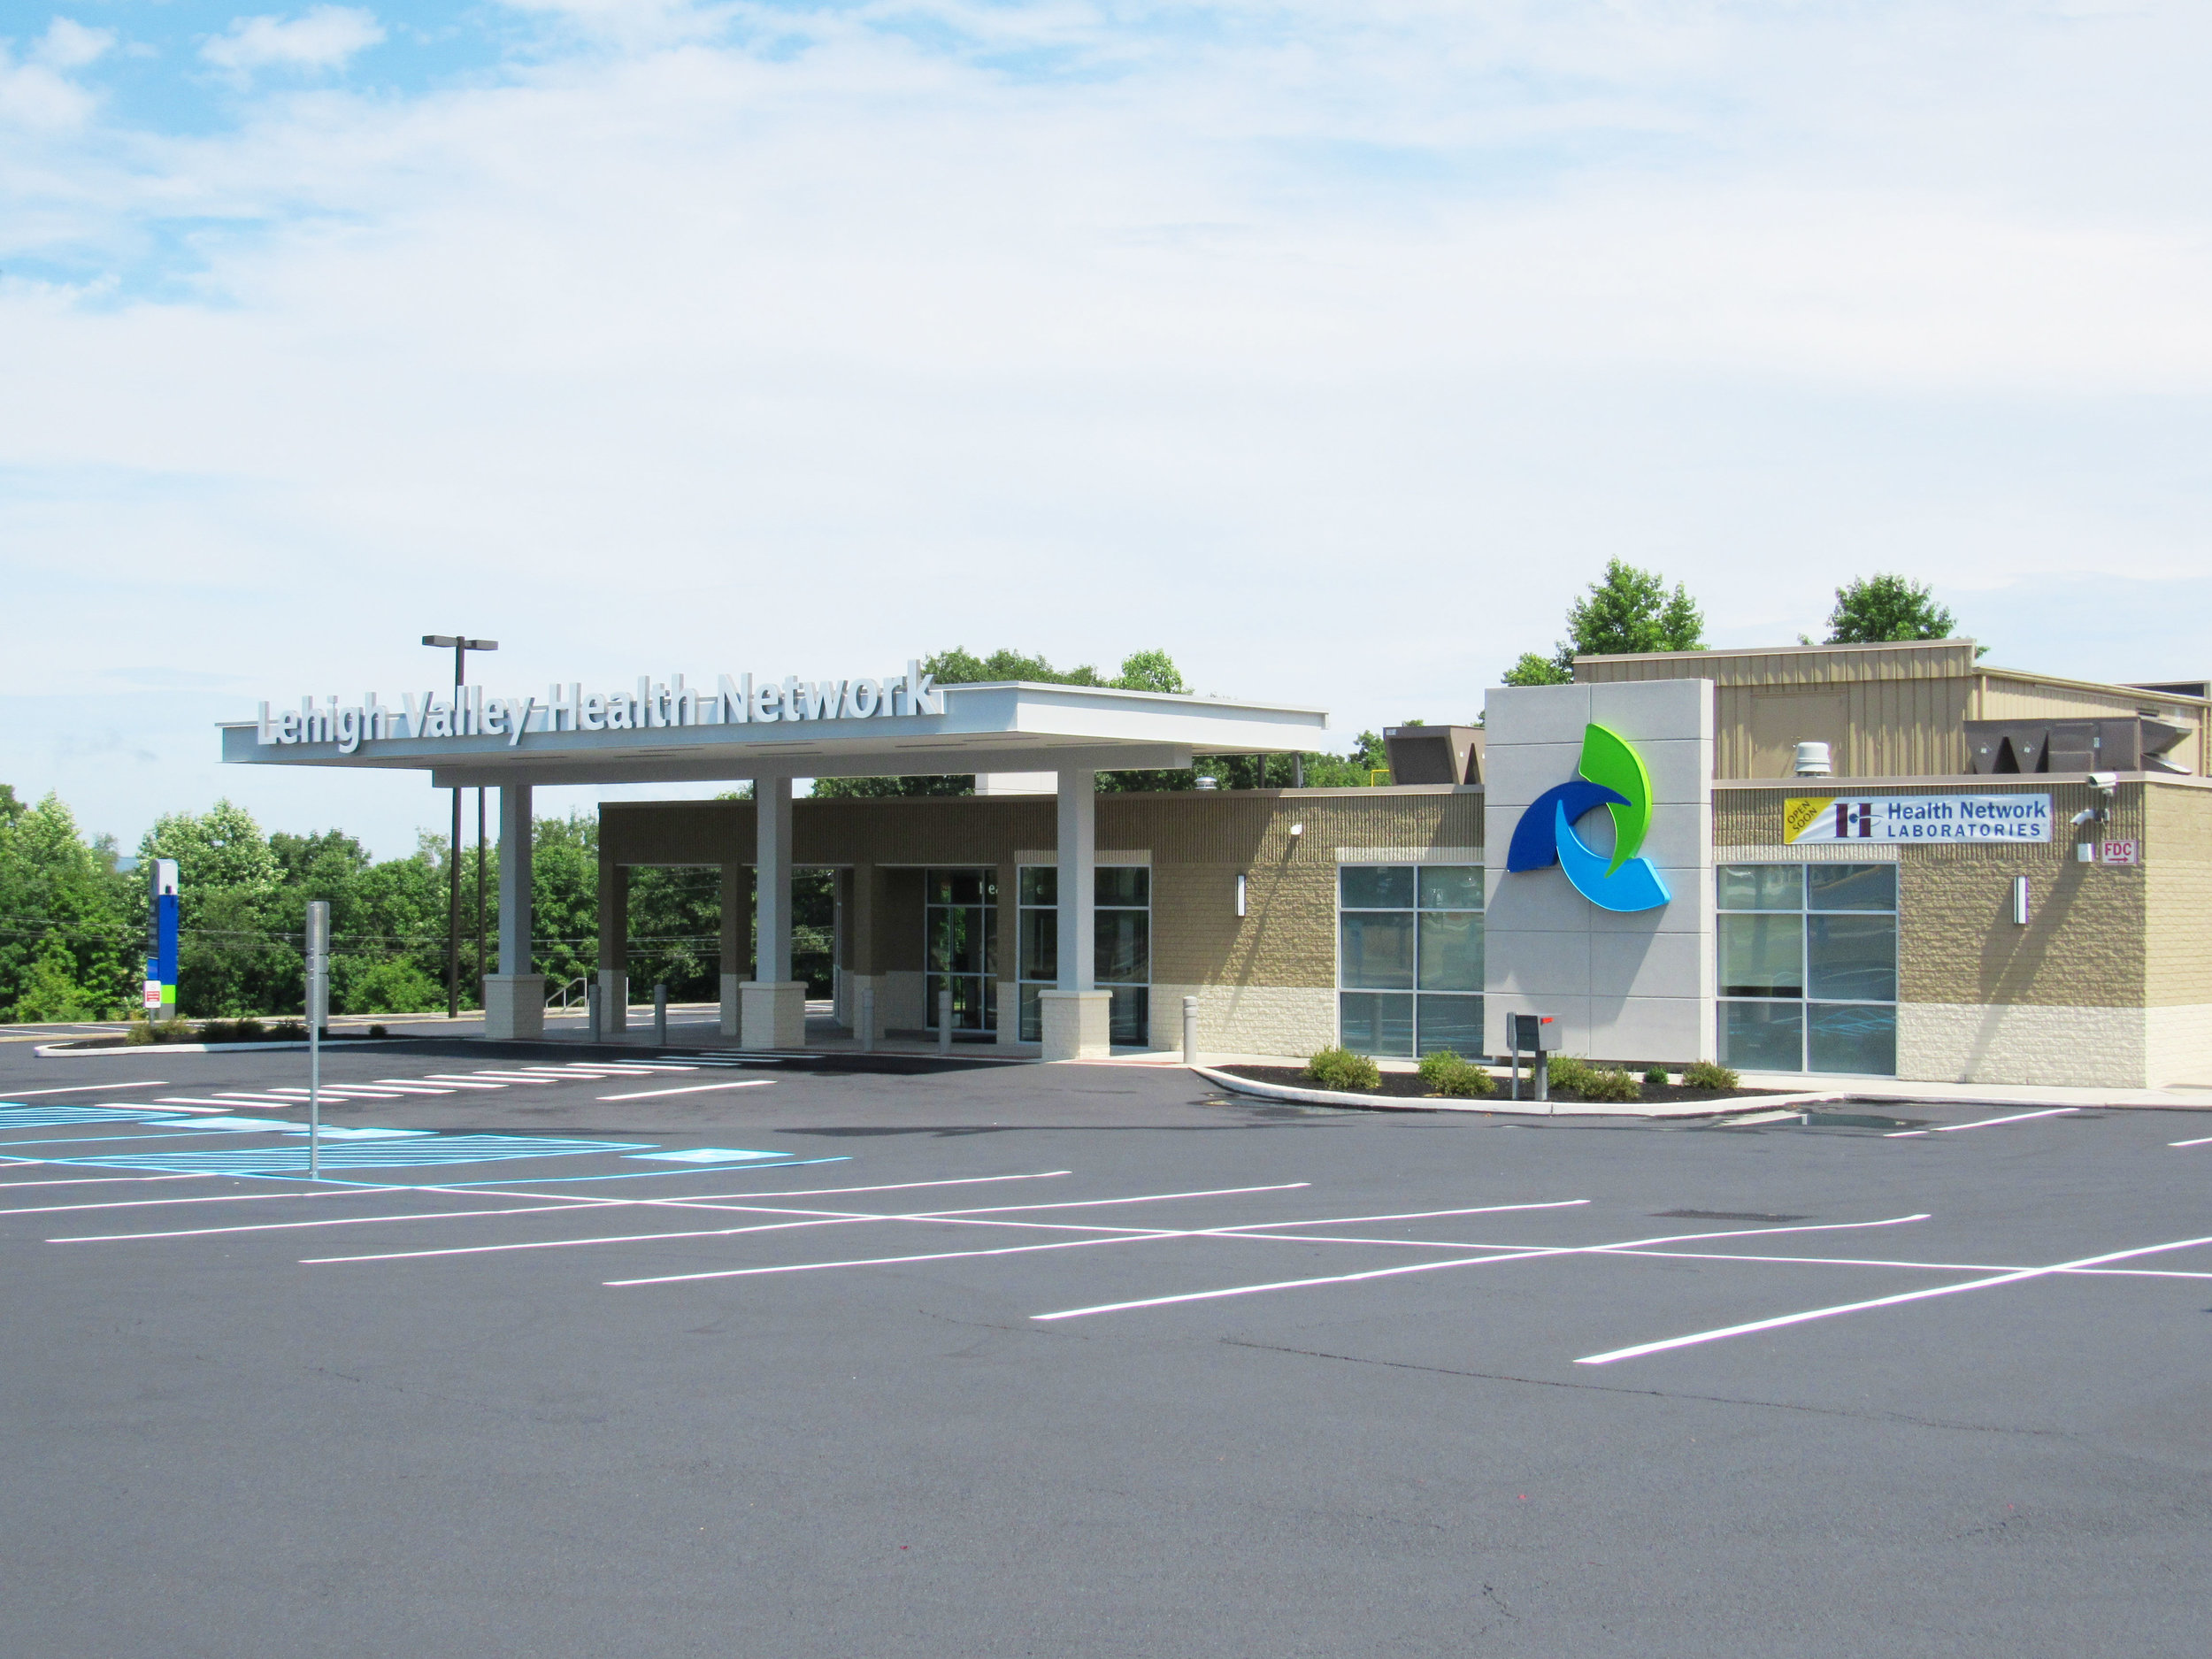 Lehigh Valley Health Network, Quakertown, PA